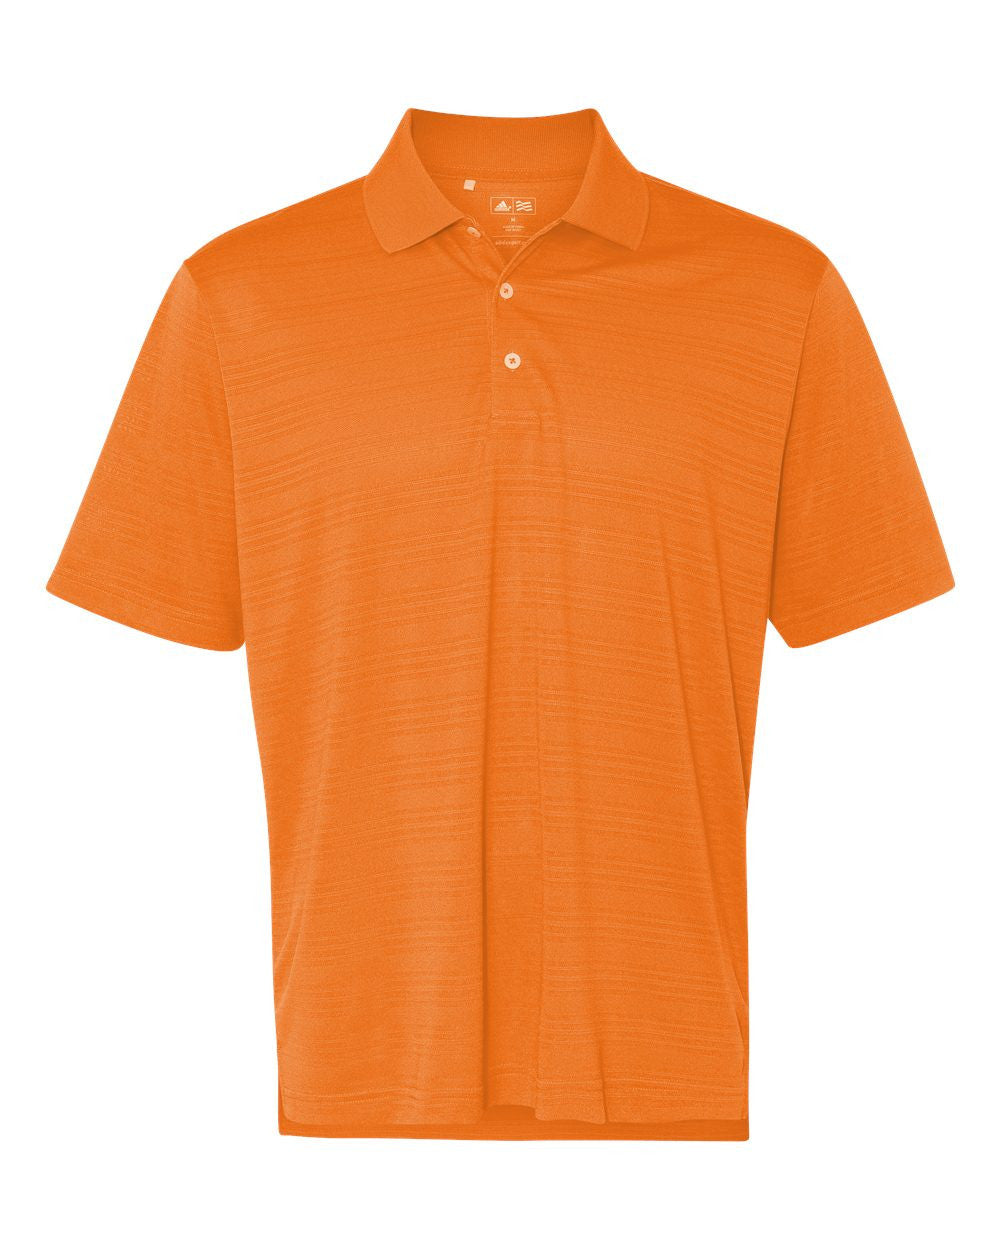 Performance Texture Polo for Men by Adidas - Discountedrack.com